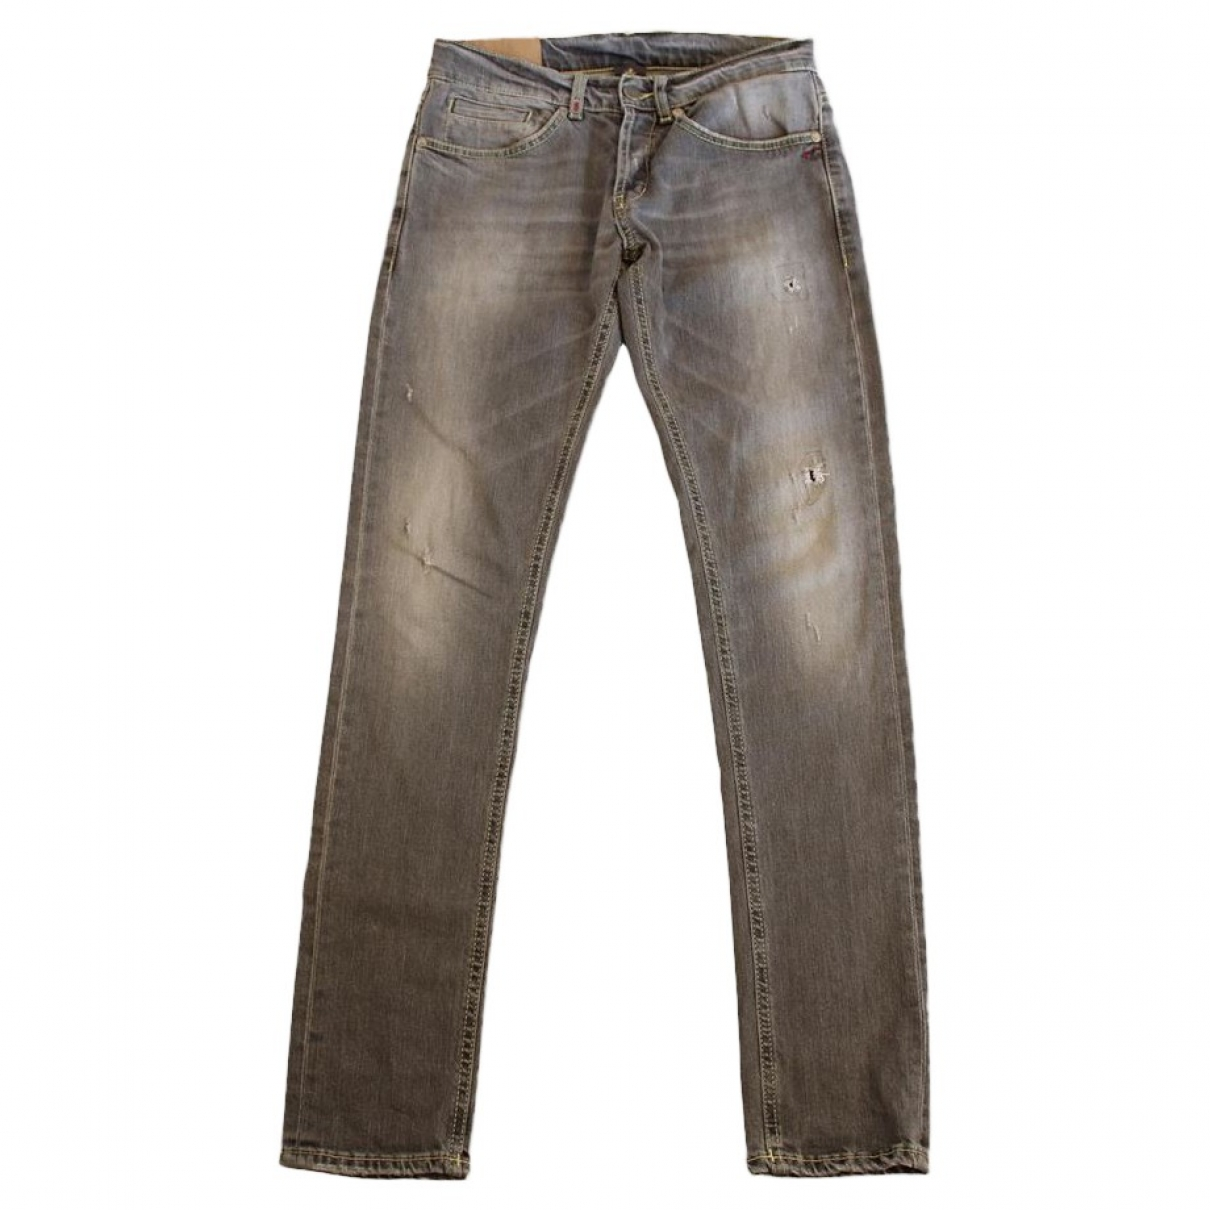 Dondup \N Brown Denim - Jeans Trousers for Women 44 IT